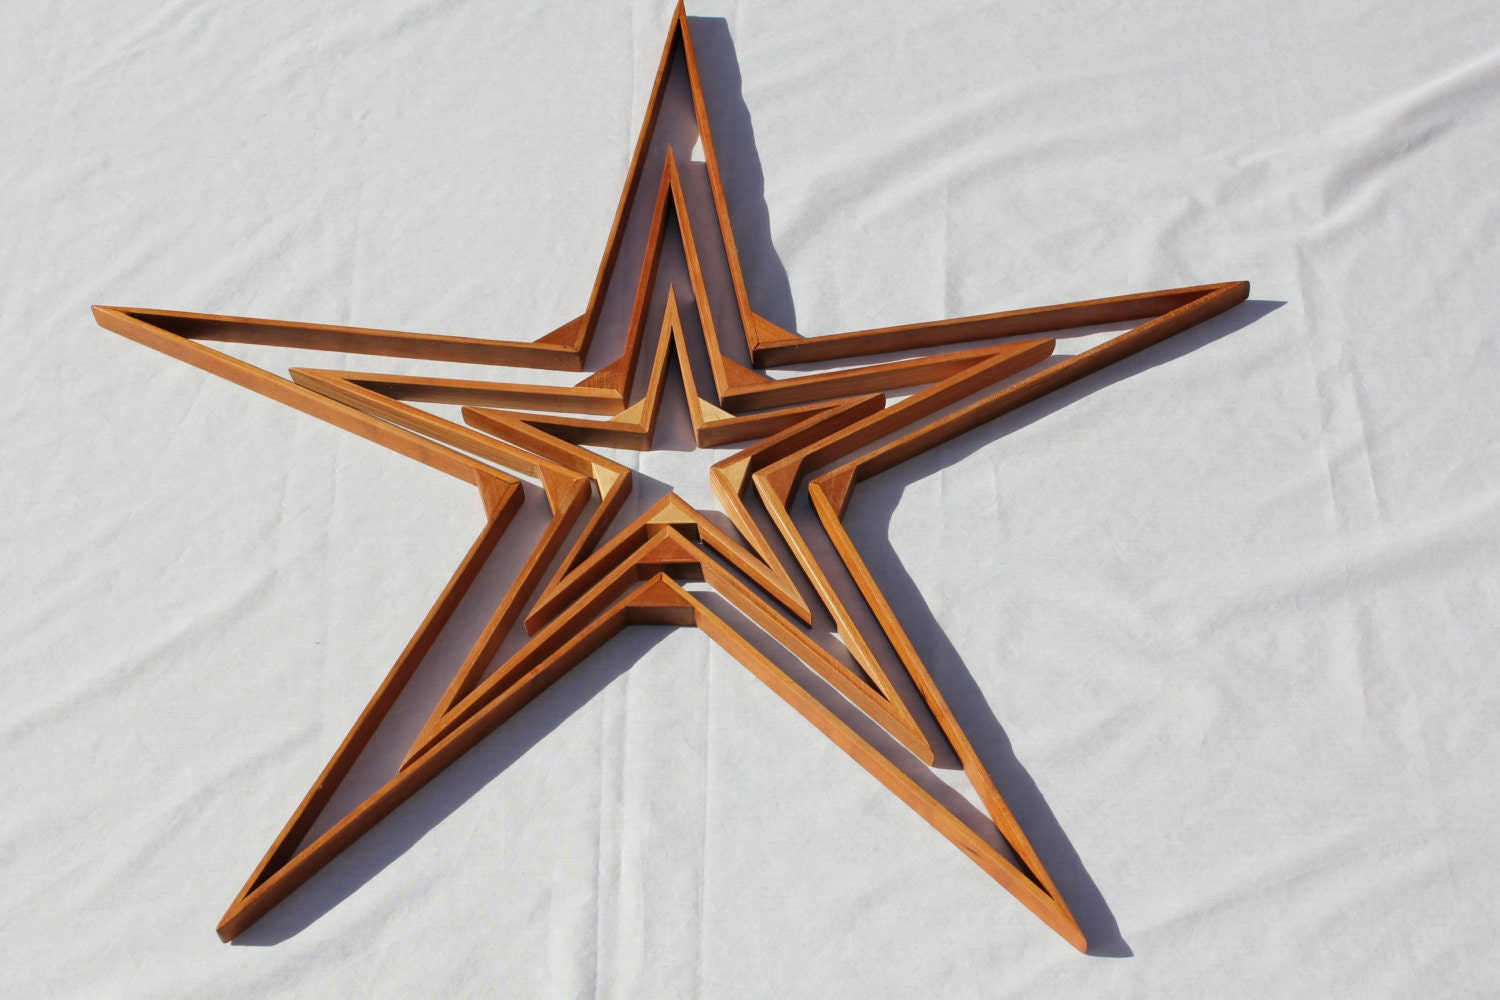 Rustic Wood Star Wood Star Home Decor Reclaimed Wood